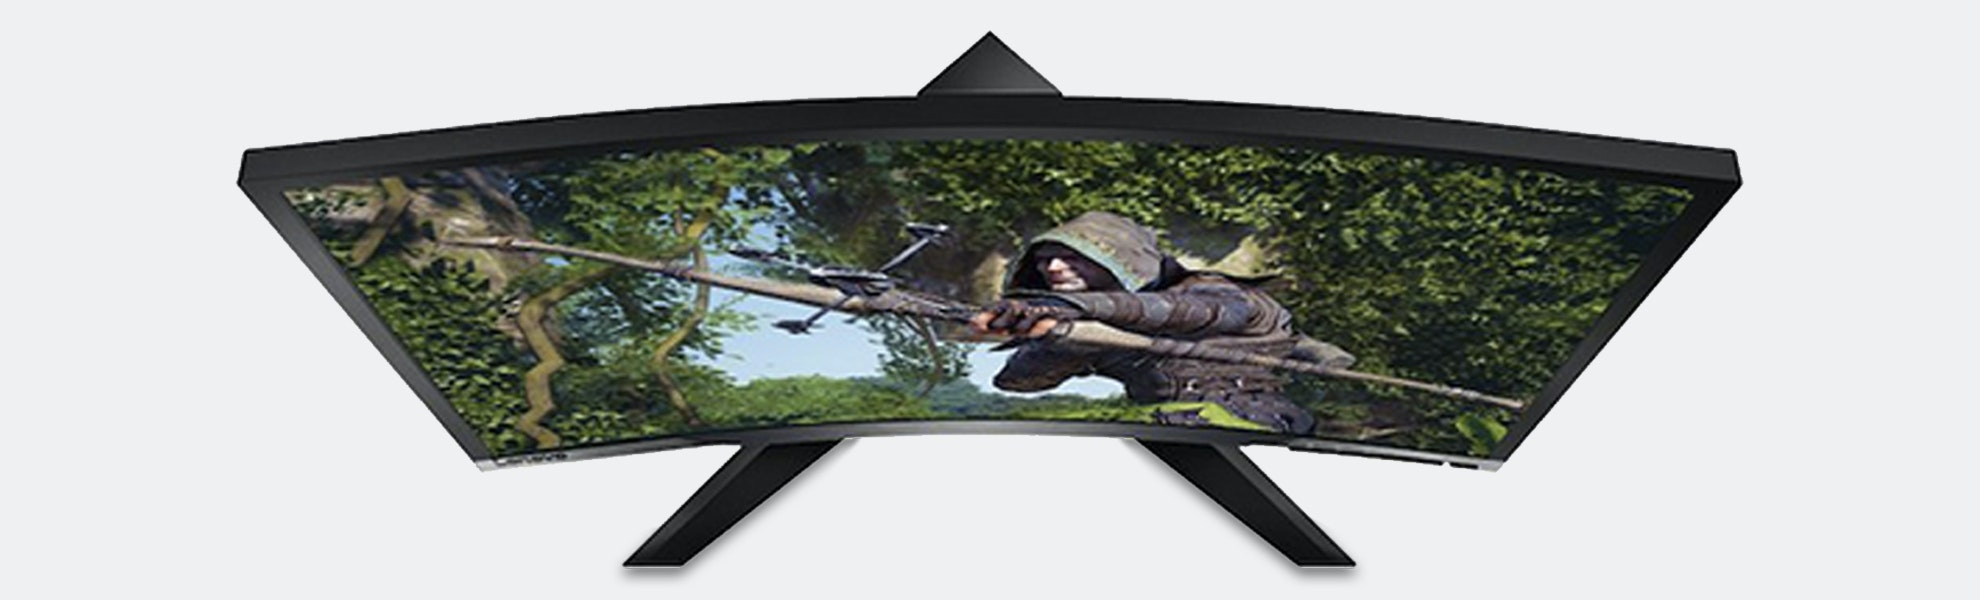 Lenovo Curved NVIDIA G-Sync 144Hz Gaming Monitor